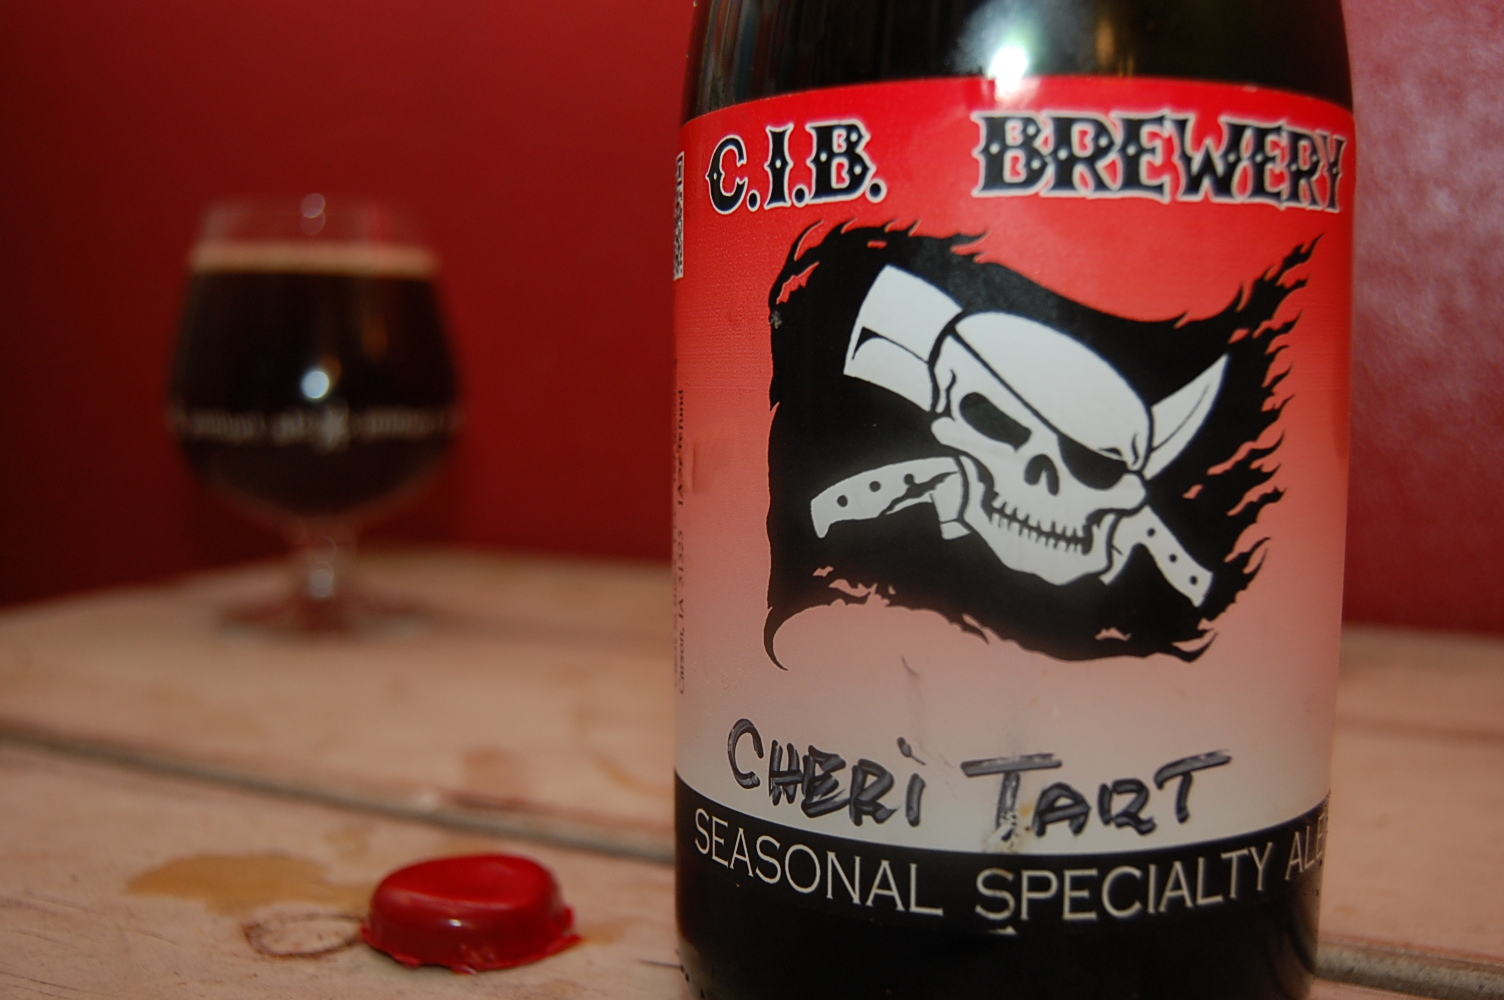 cib cheri tart 2012 Beer Advent Calendar